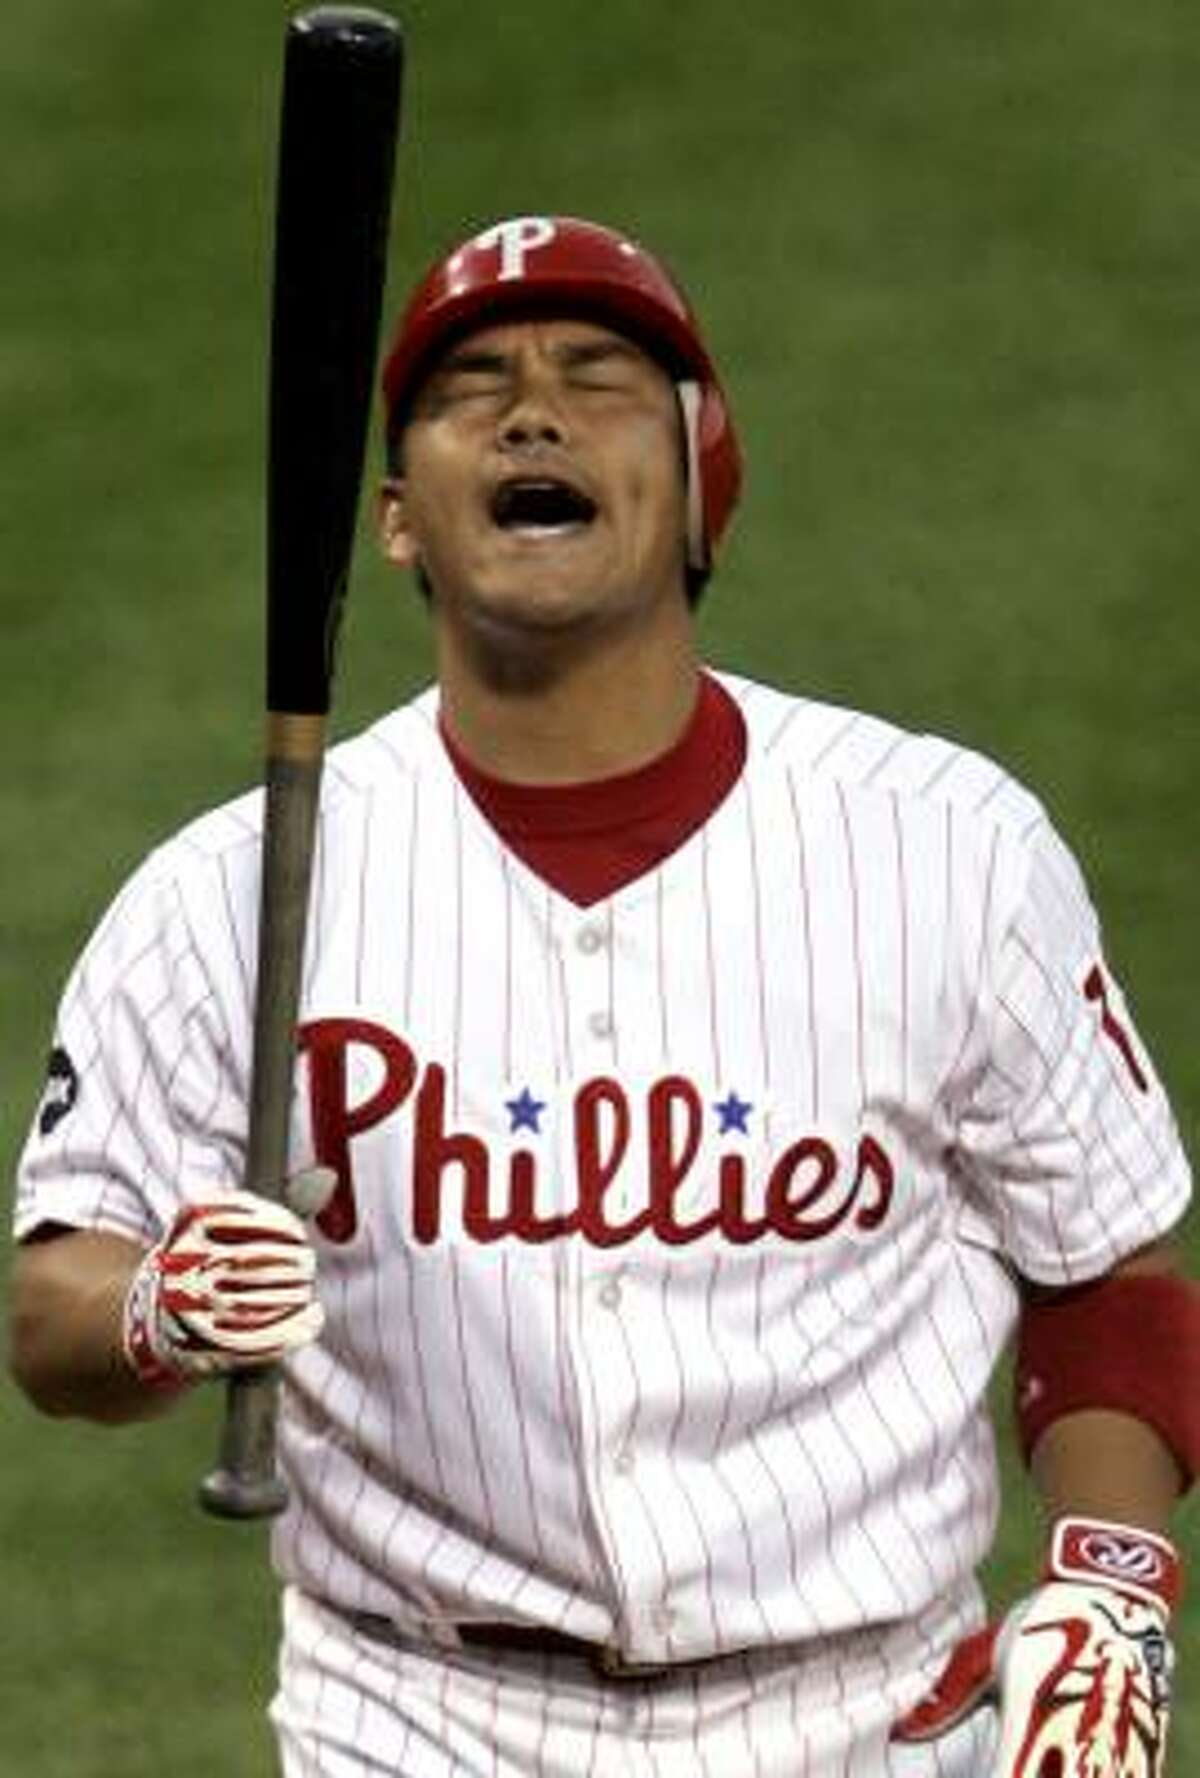 The Astros have expressed an interest in Tadahito Iguchi, who split last season with the White Sox and Phillies.